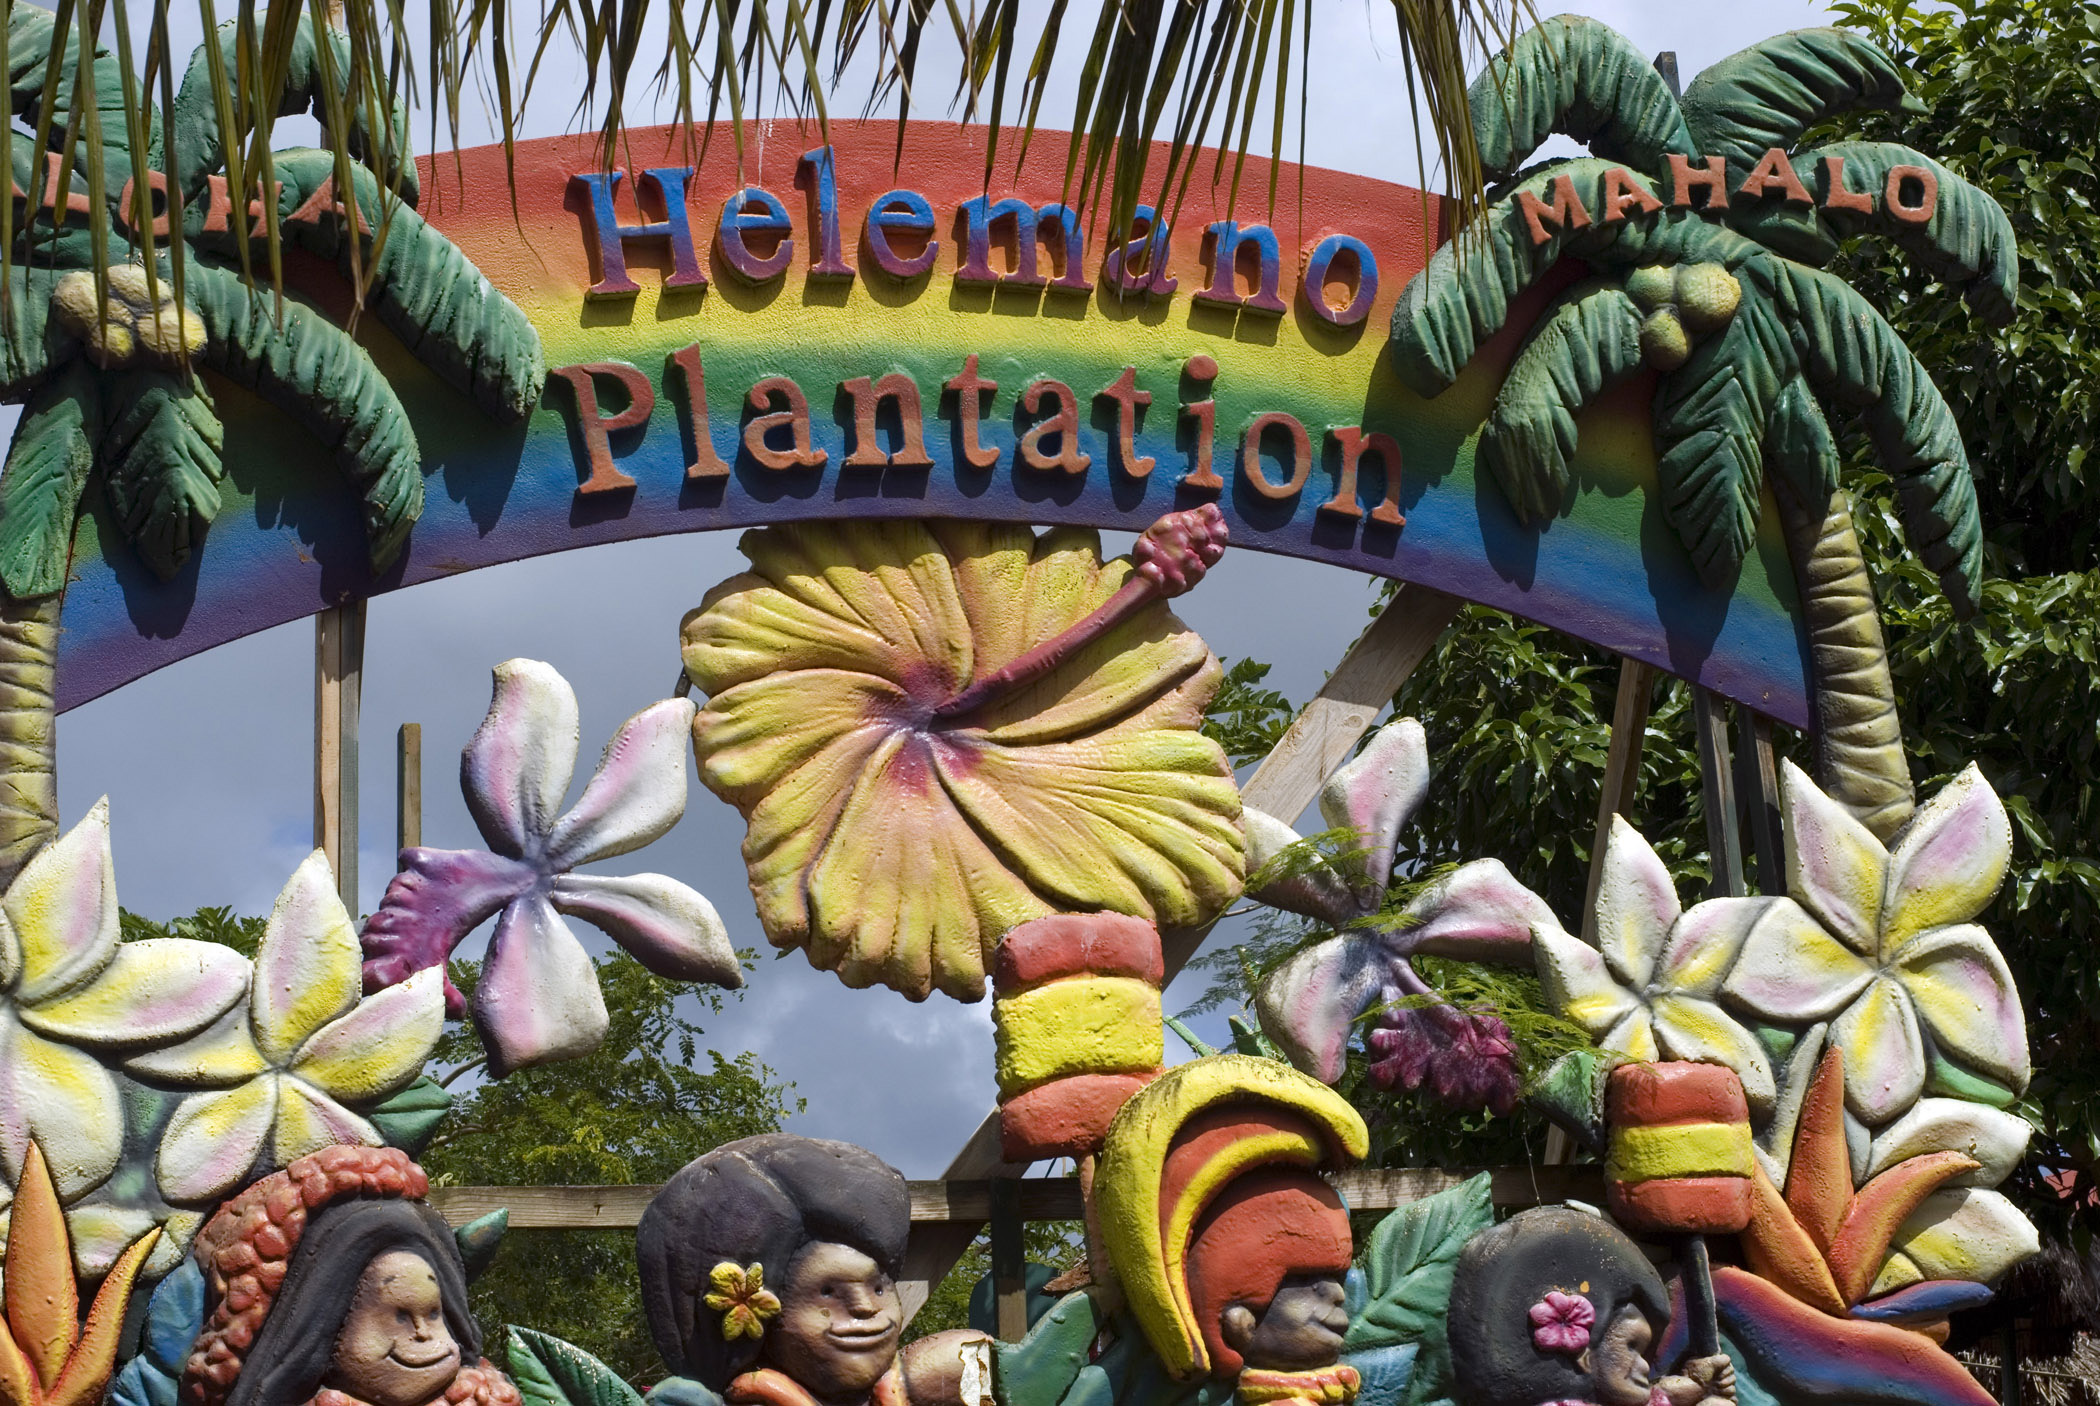 Colorful Helemano Plantation sign on a pineapple plantation visitor center in Hawaii with palm trees, frangipani and hibiscus flowers and peoples faces